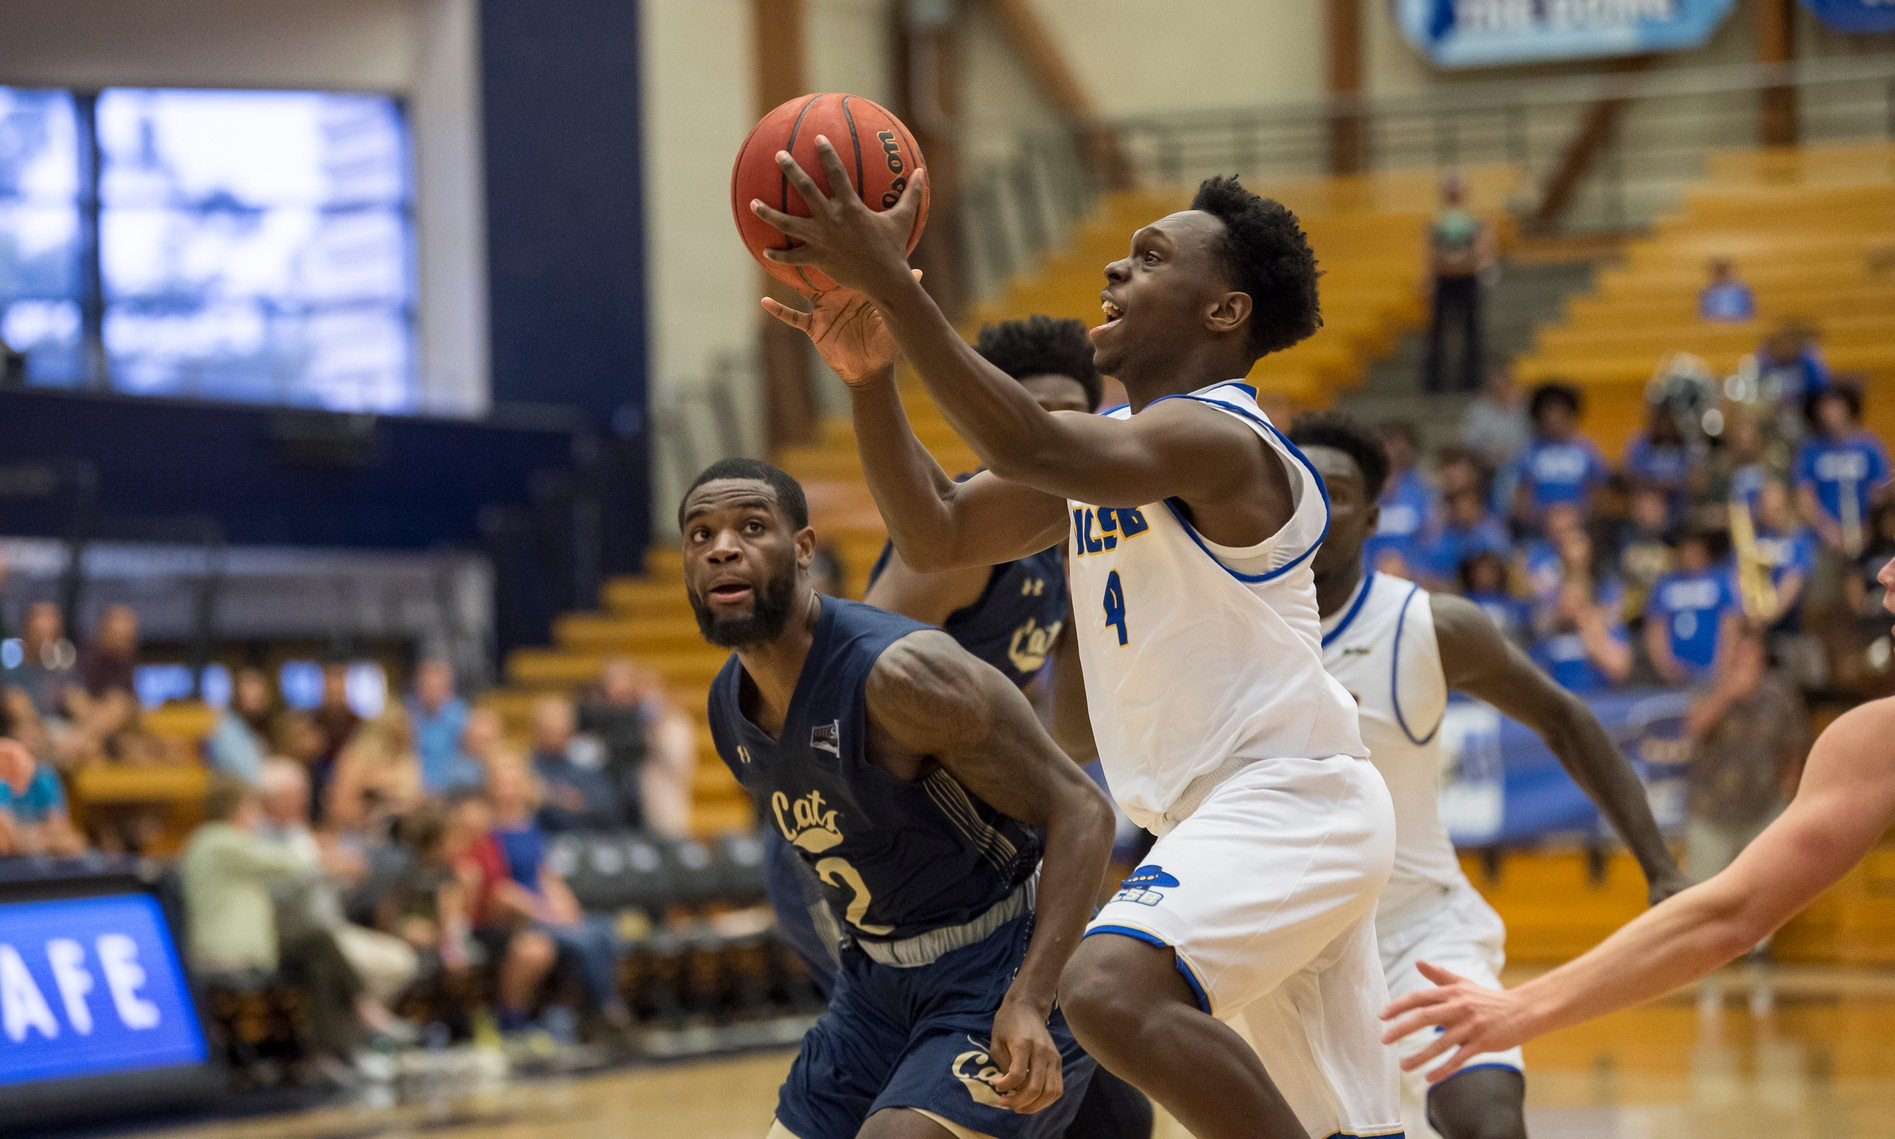 Gauchos Struggle in 2nd Half, Drop 55-52 Decision to Long Beach State